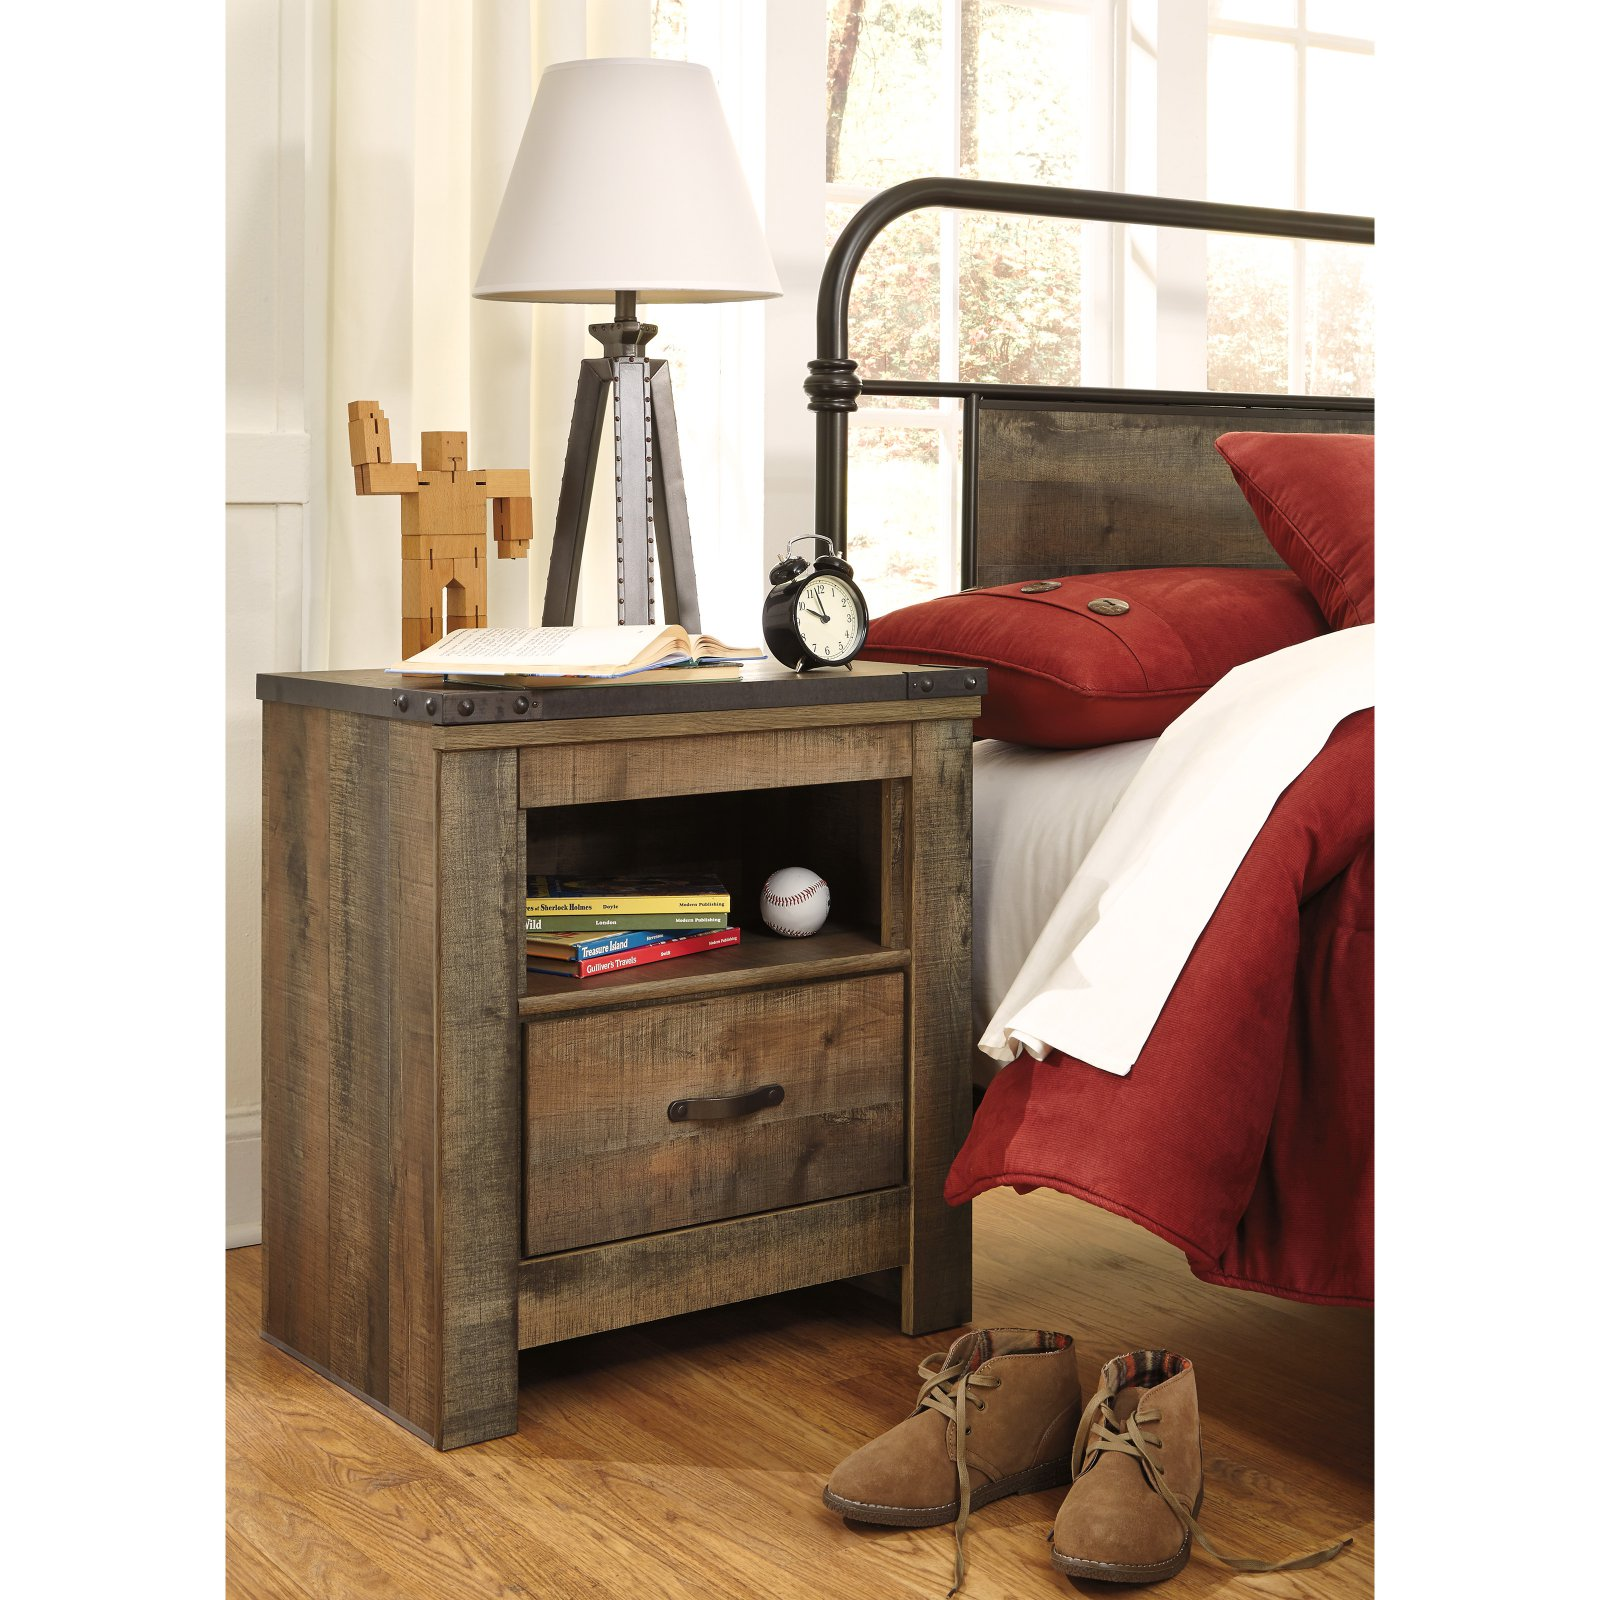 Signature Design by Ashley Trinell Rustic Night Stand